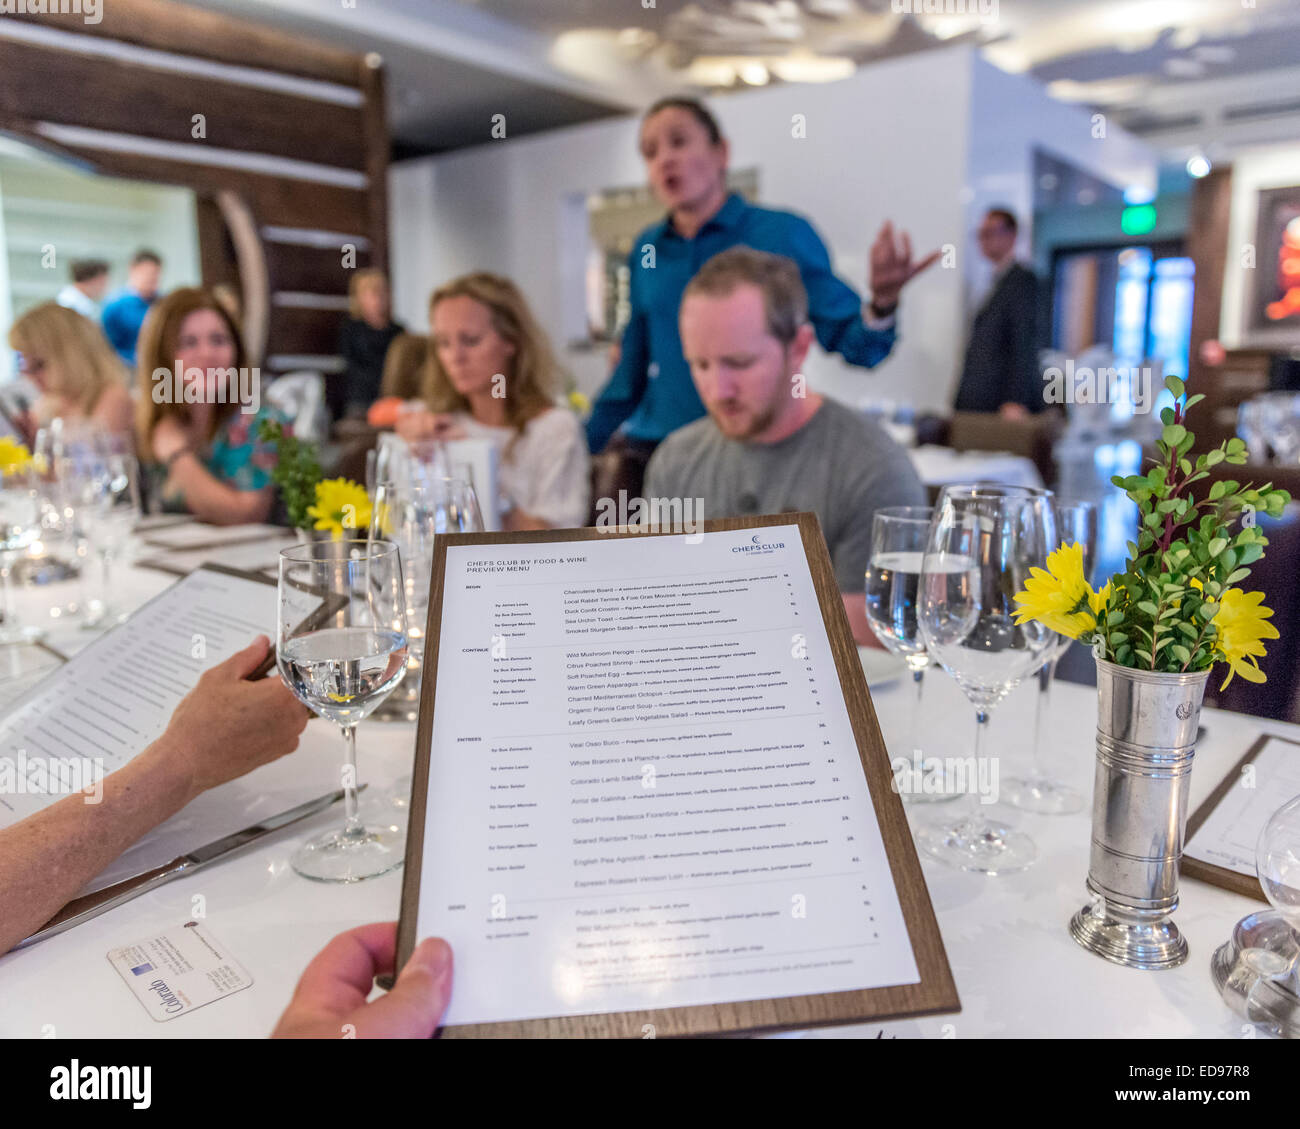 Chefs Club Stock Photos & Chefs Club Stock Images - Alamy